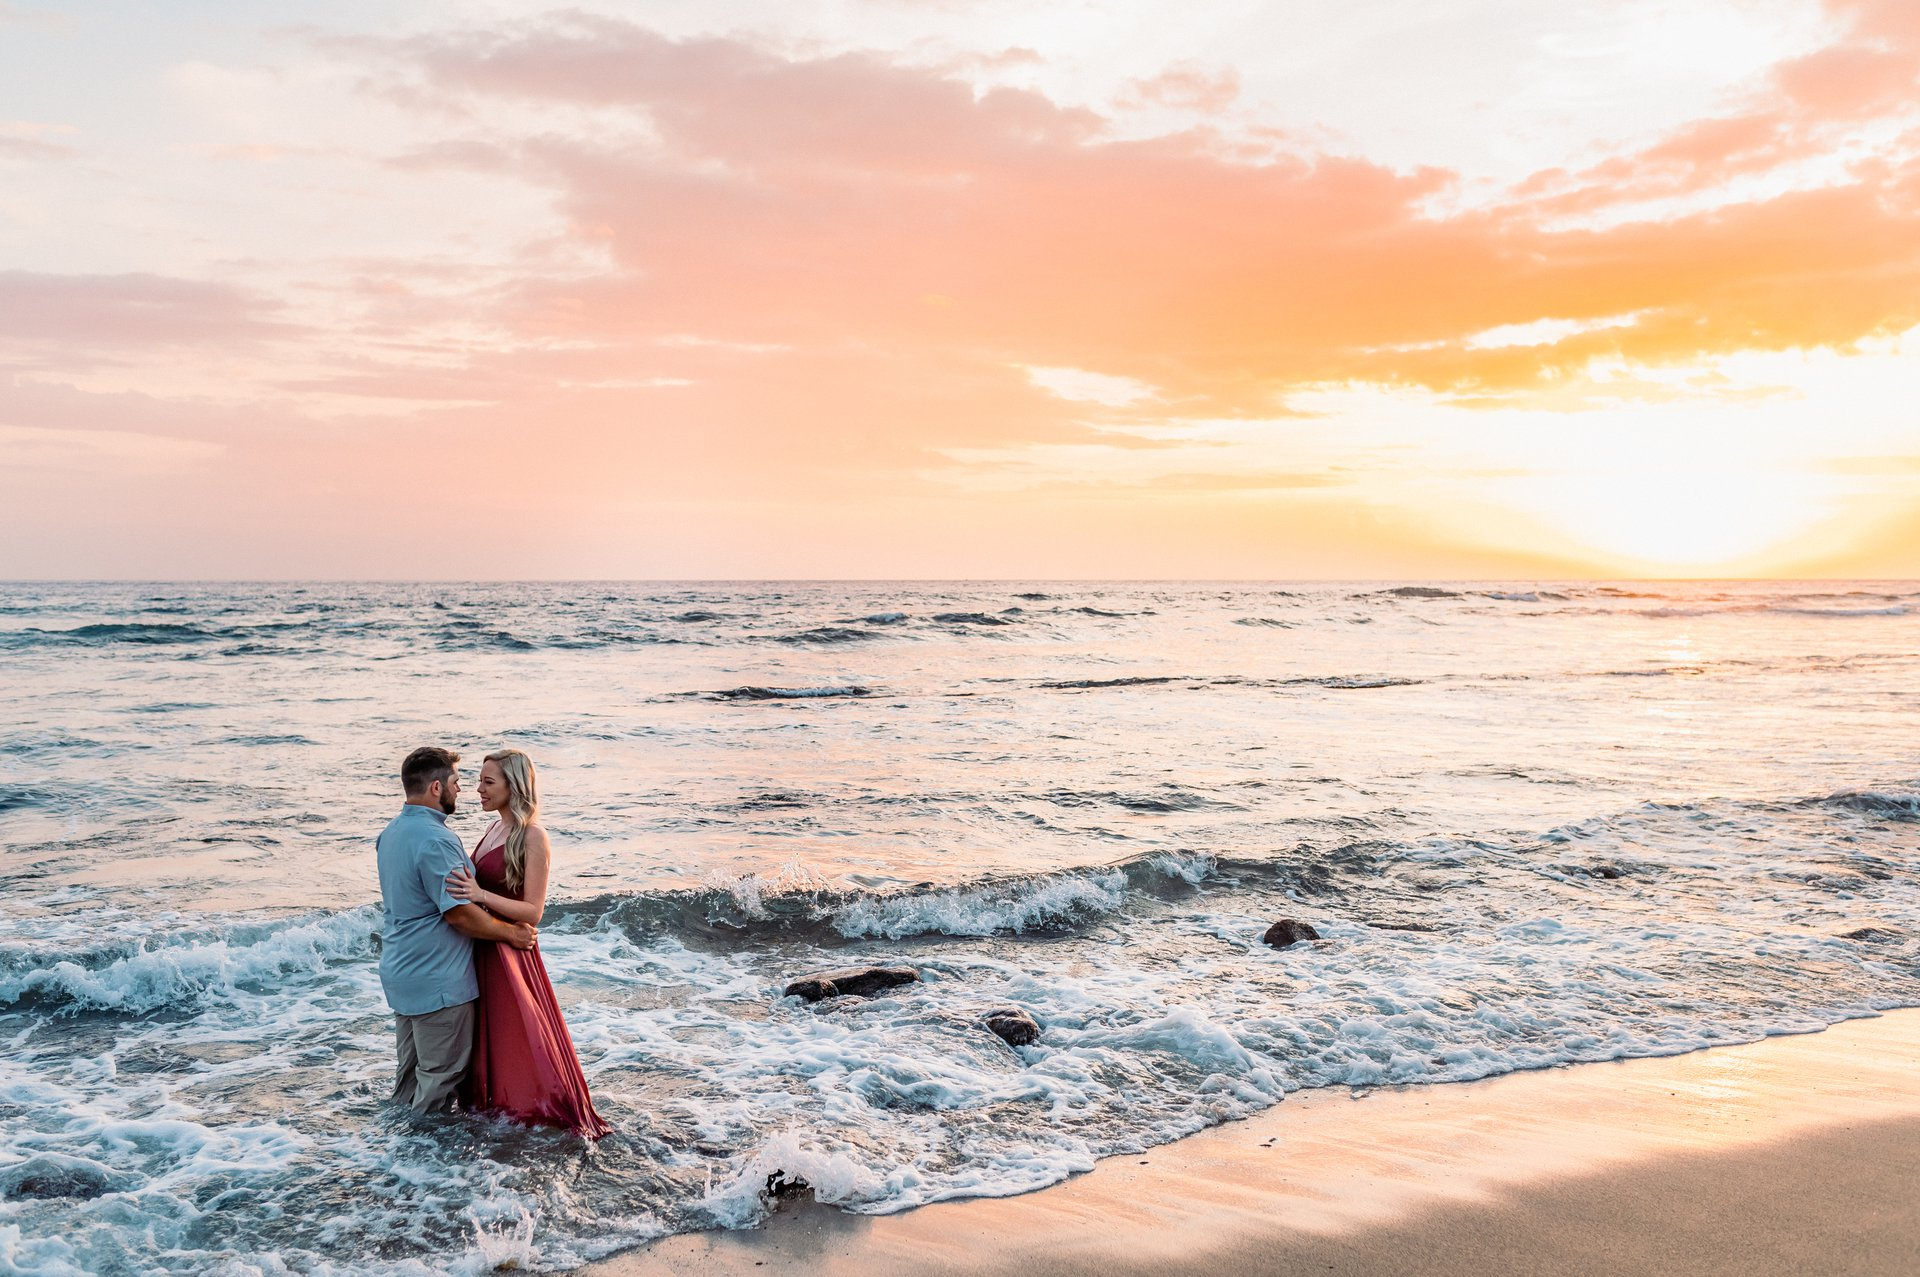 Flytographer Travel Story - First Wedding Anniversary in Hawaii